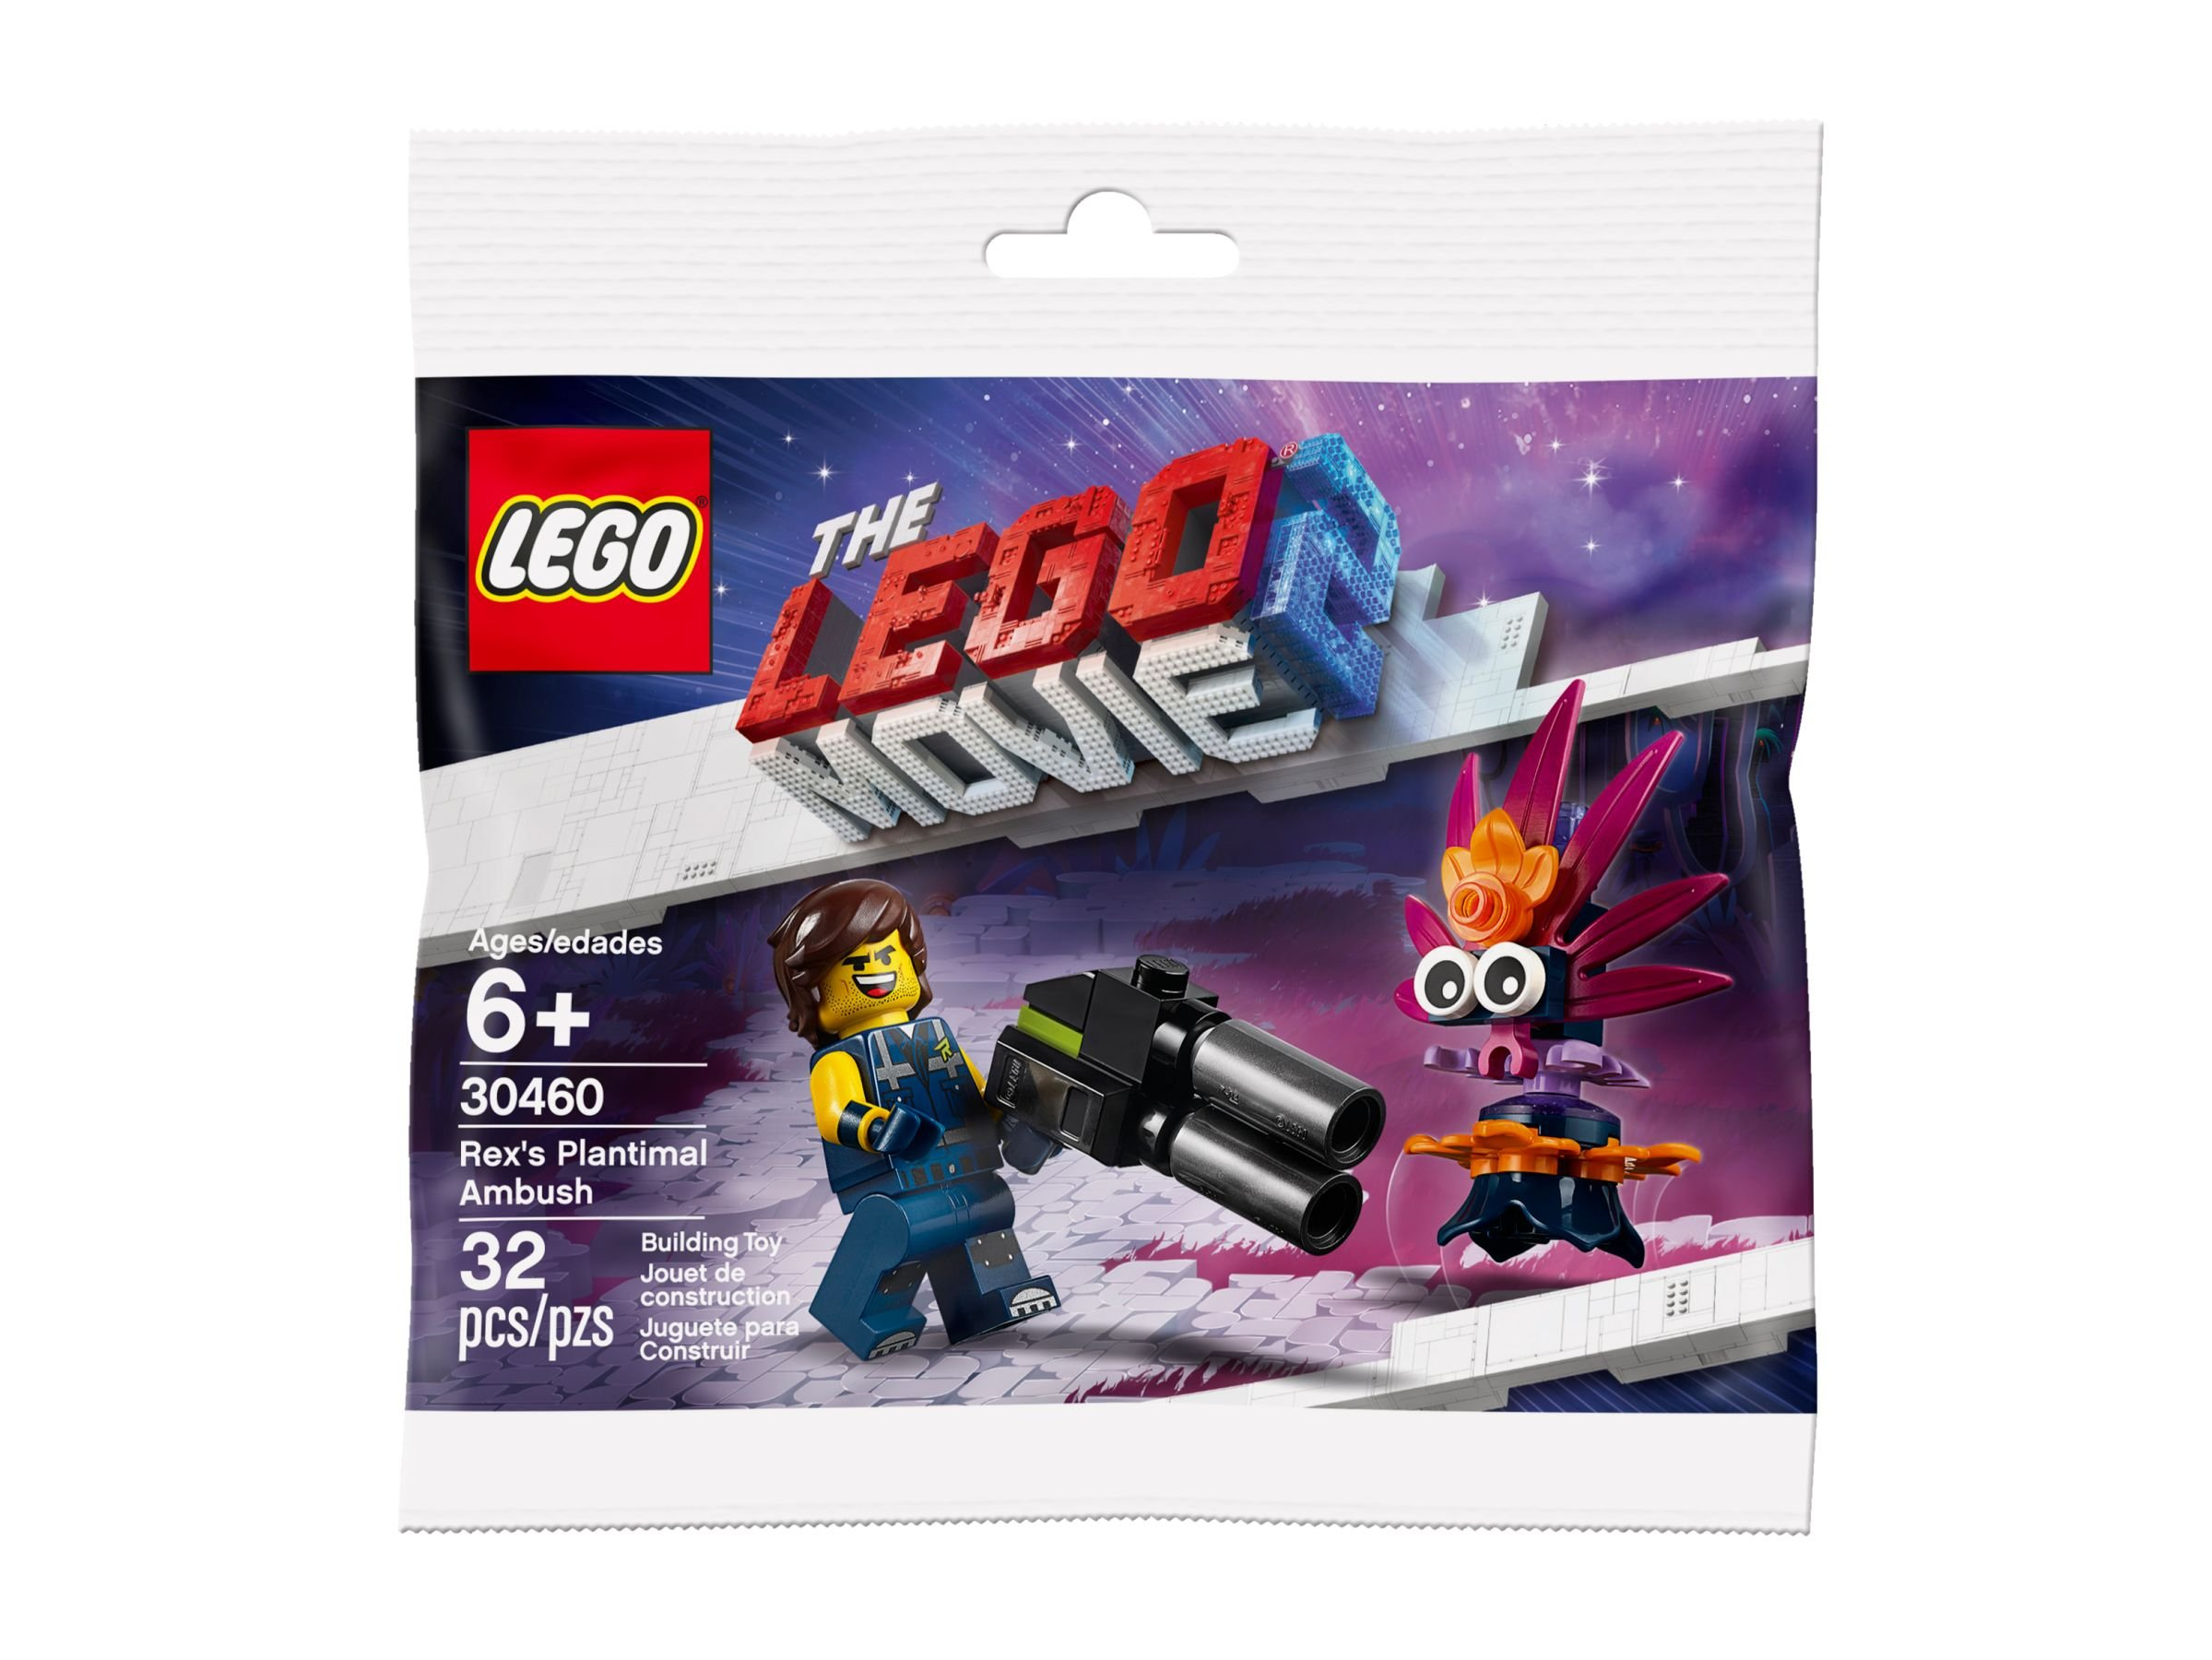 LEGO The LEGO Movie 2 30460 Rex' Hinterhalt LEGO_30460_alt2.jpg